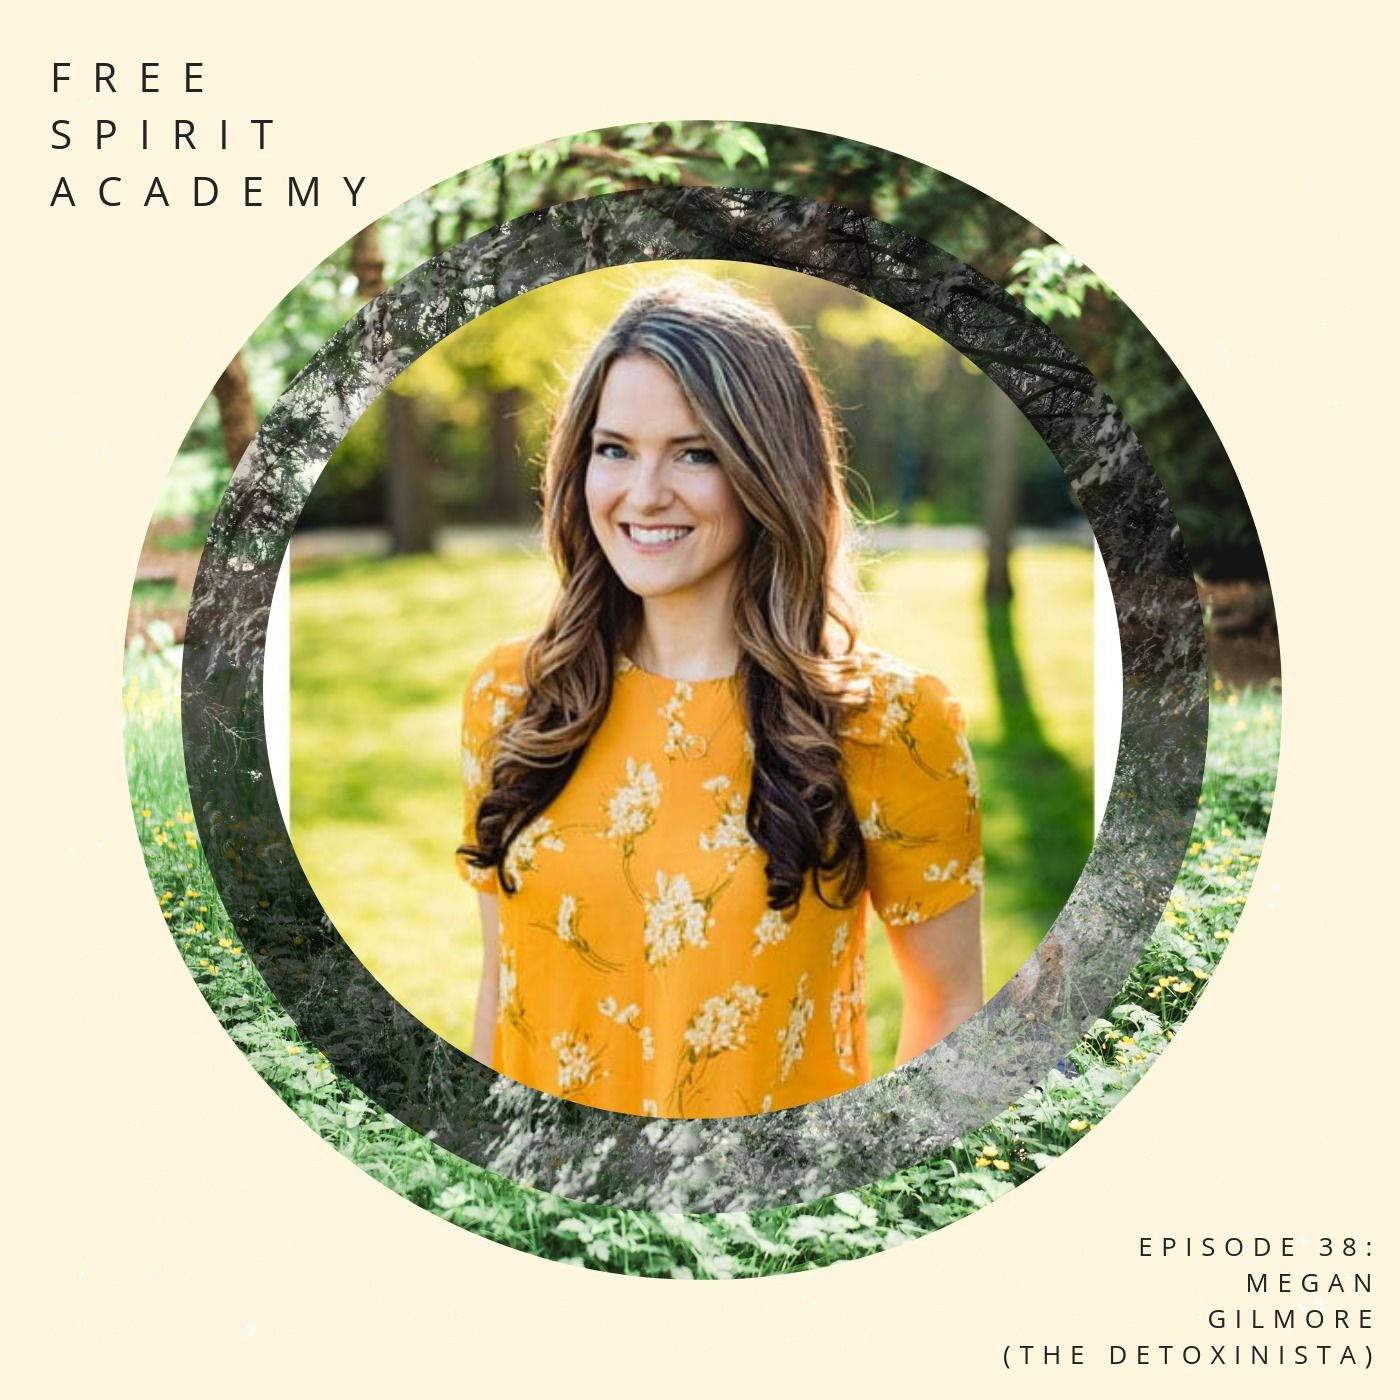 38 | Megan Gilmore - The Detoxinista | Holistic Wellness After Healing an Eating Disorder